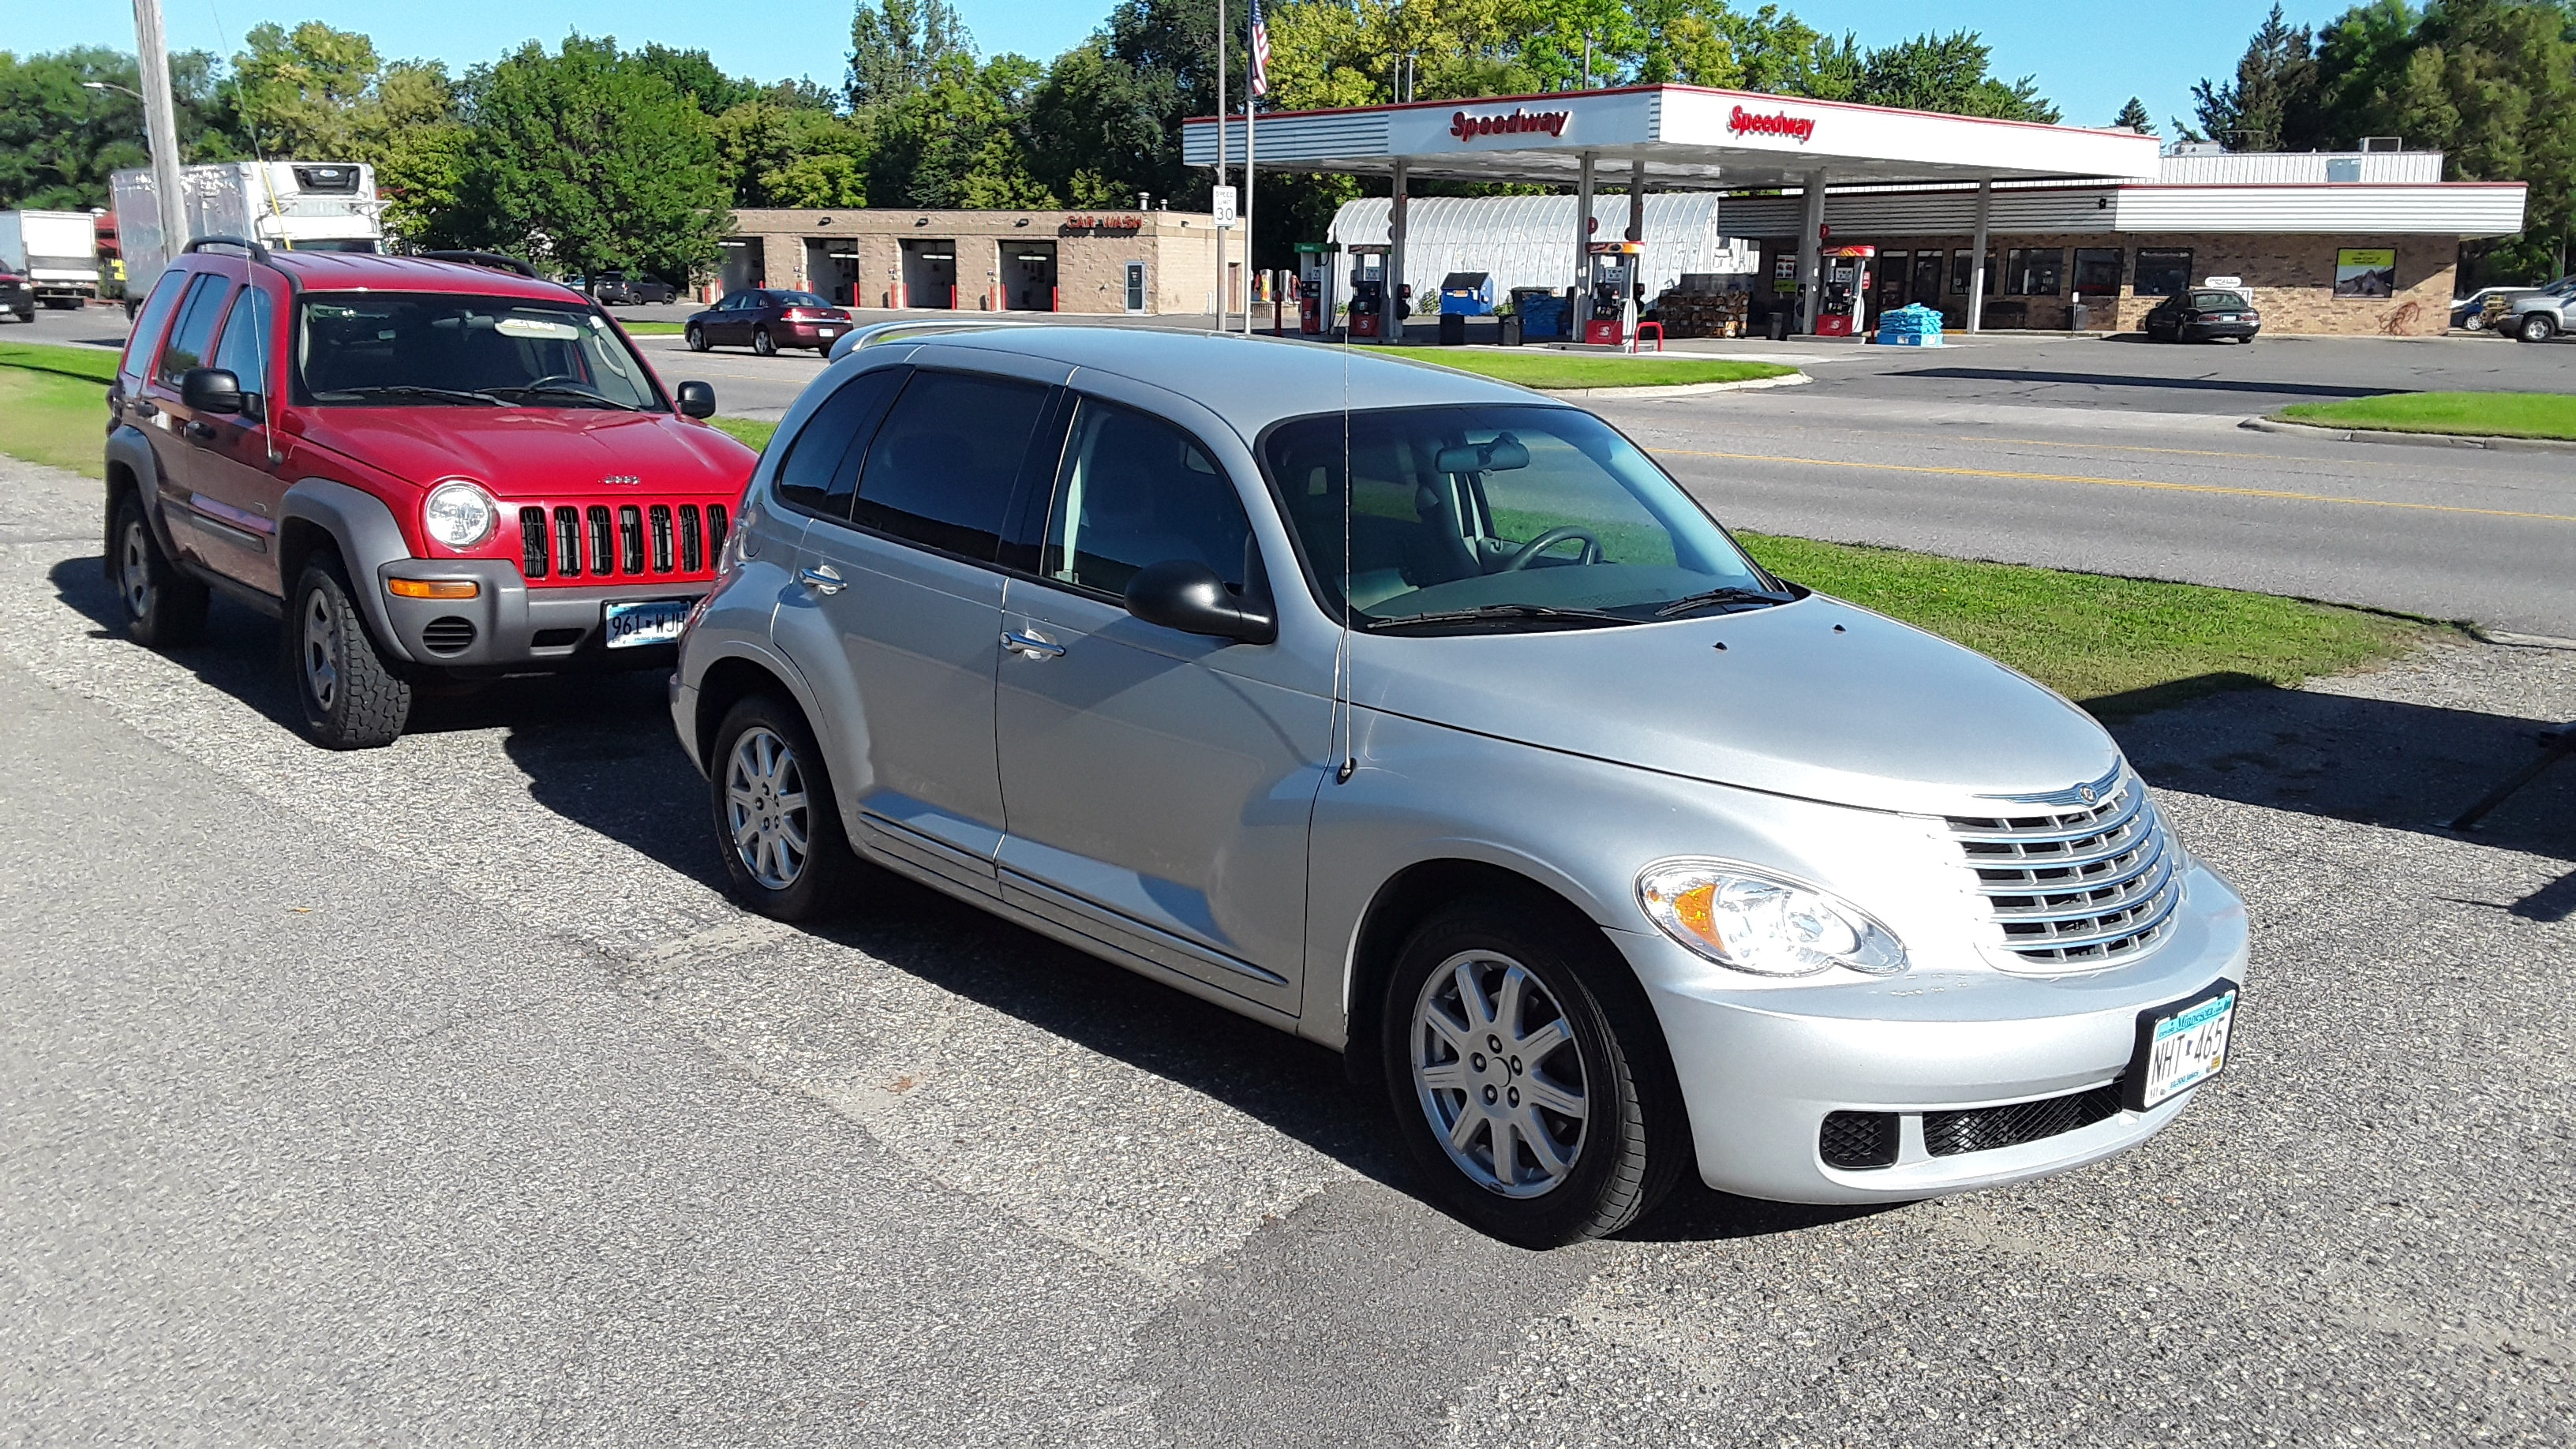 Used 2007 Chrysler PT Cruiser  with VIN 3A4FY48B77T607682 for sale in Litchfield, Minnesota